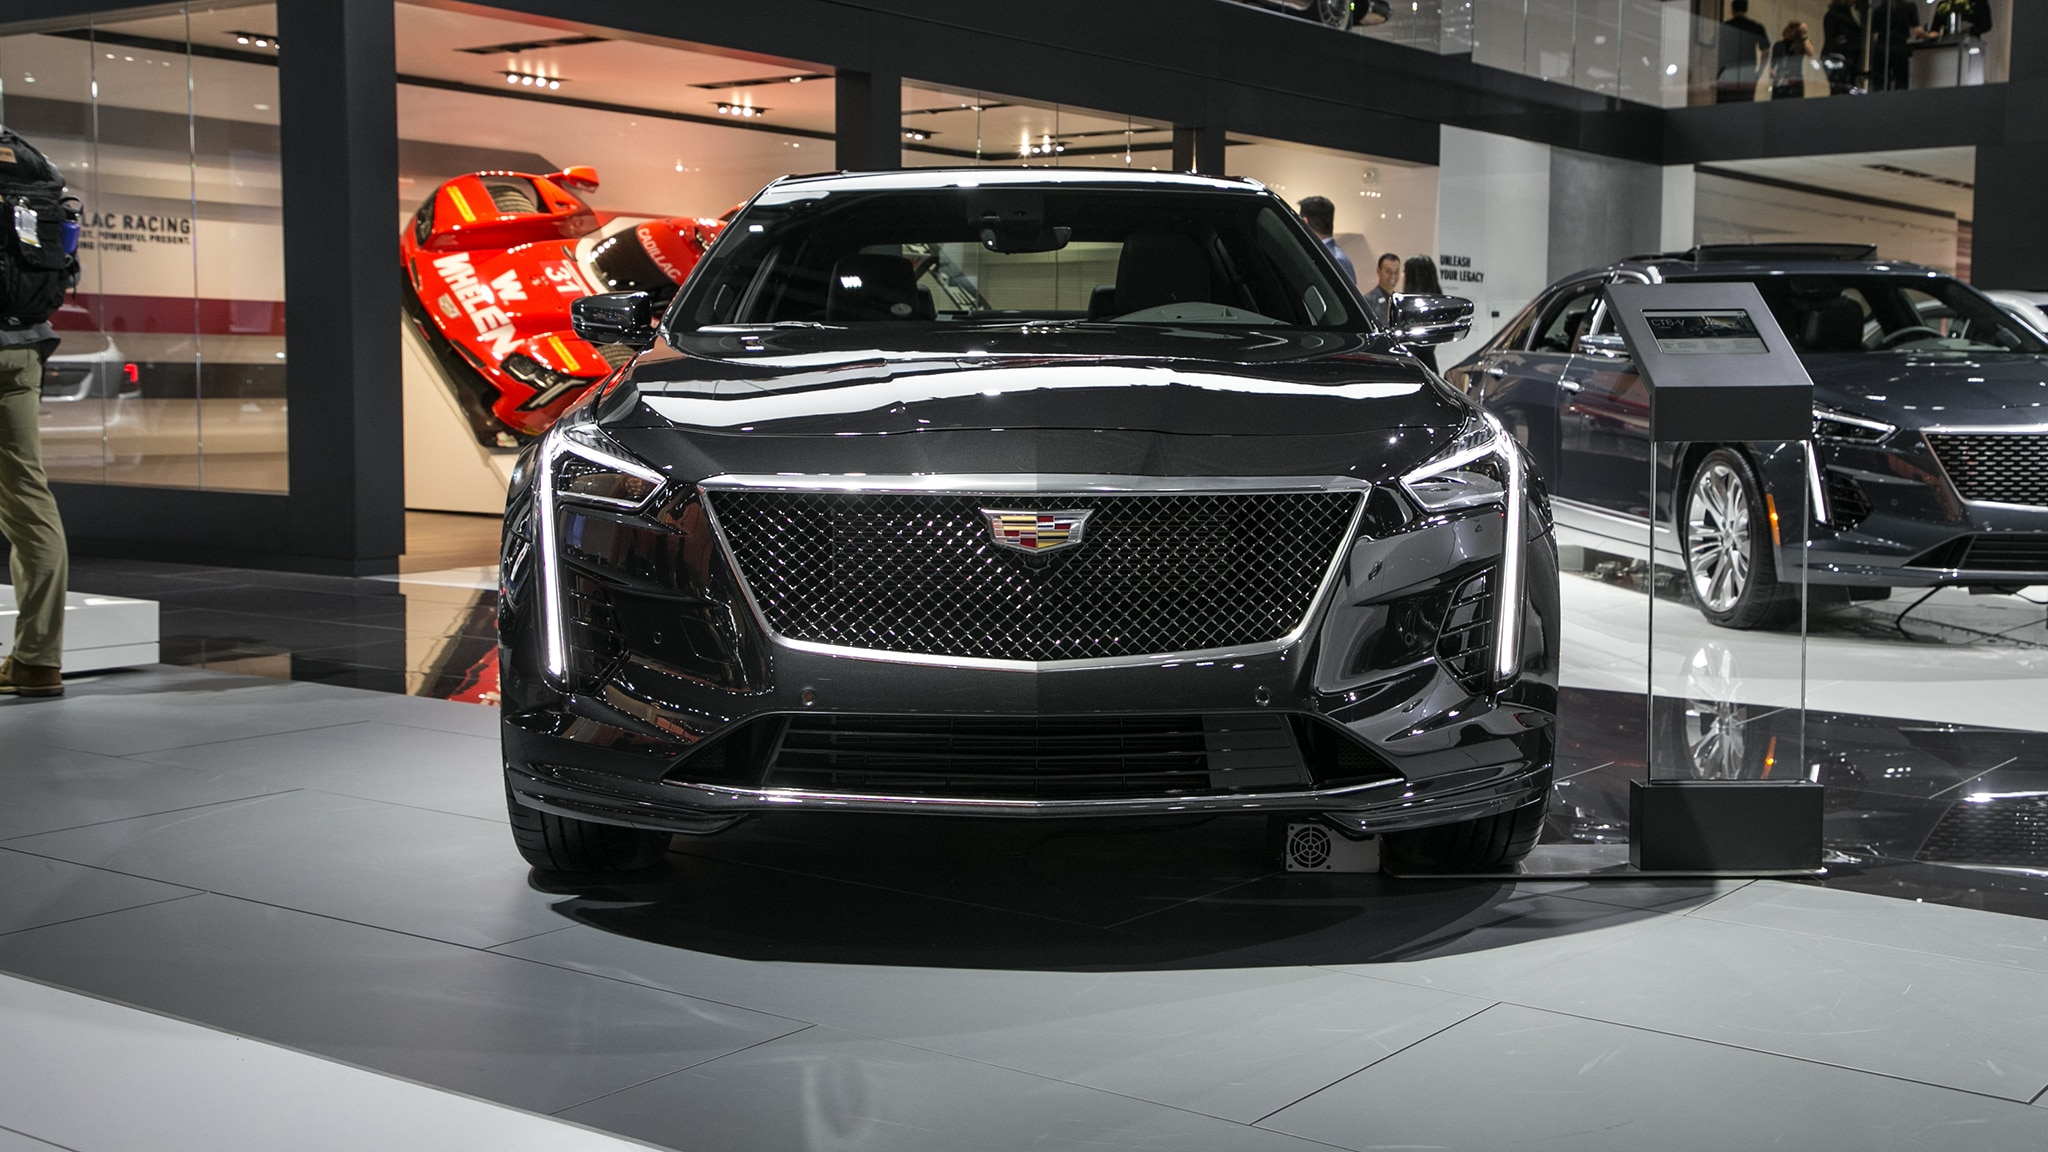 2019 Cadillac Ct6 V Is A Thing Get One Before Never Mind It S Sold Out